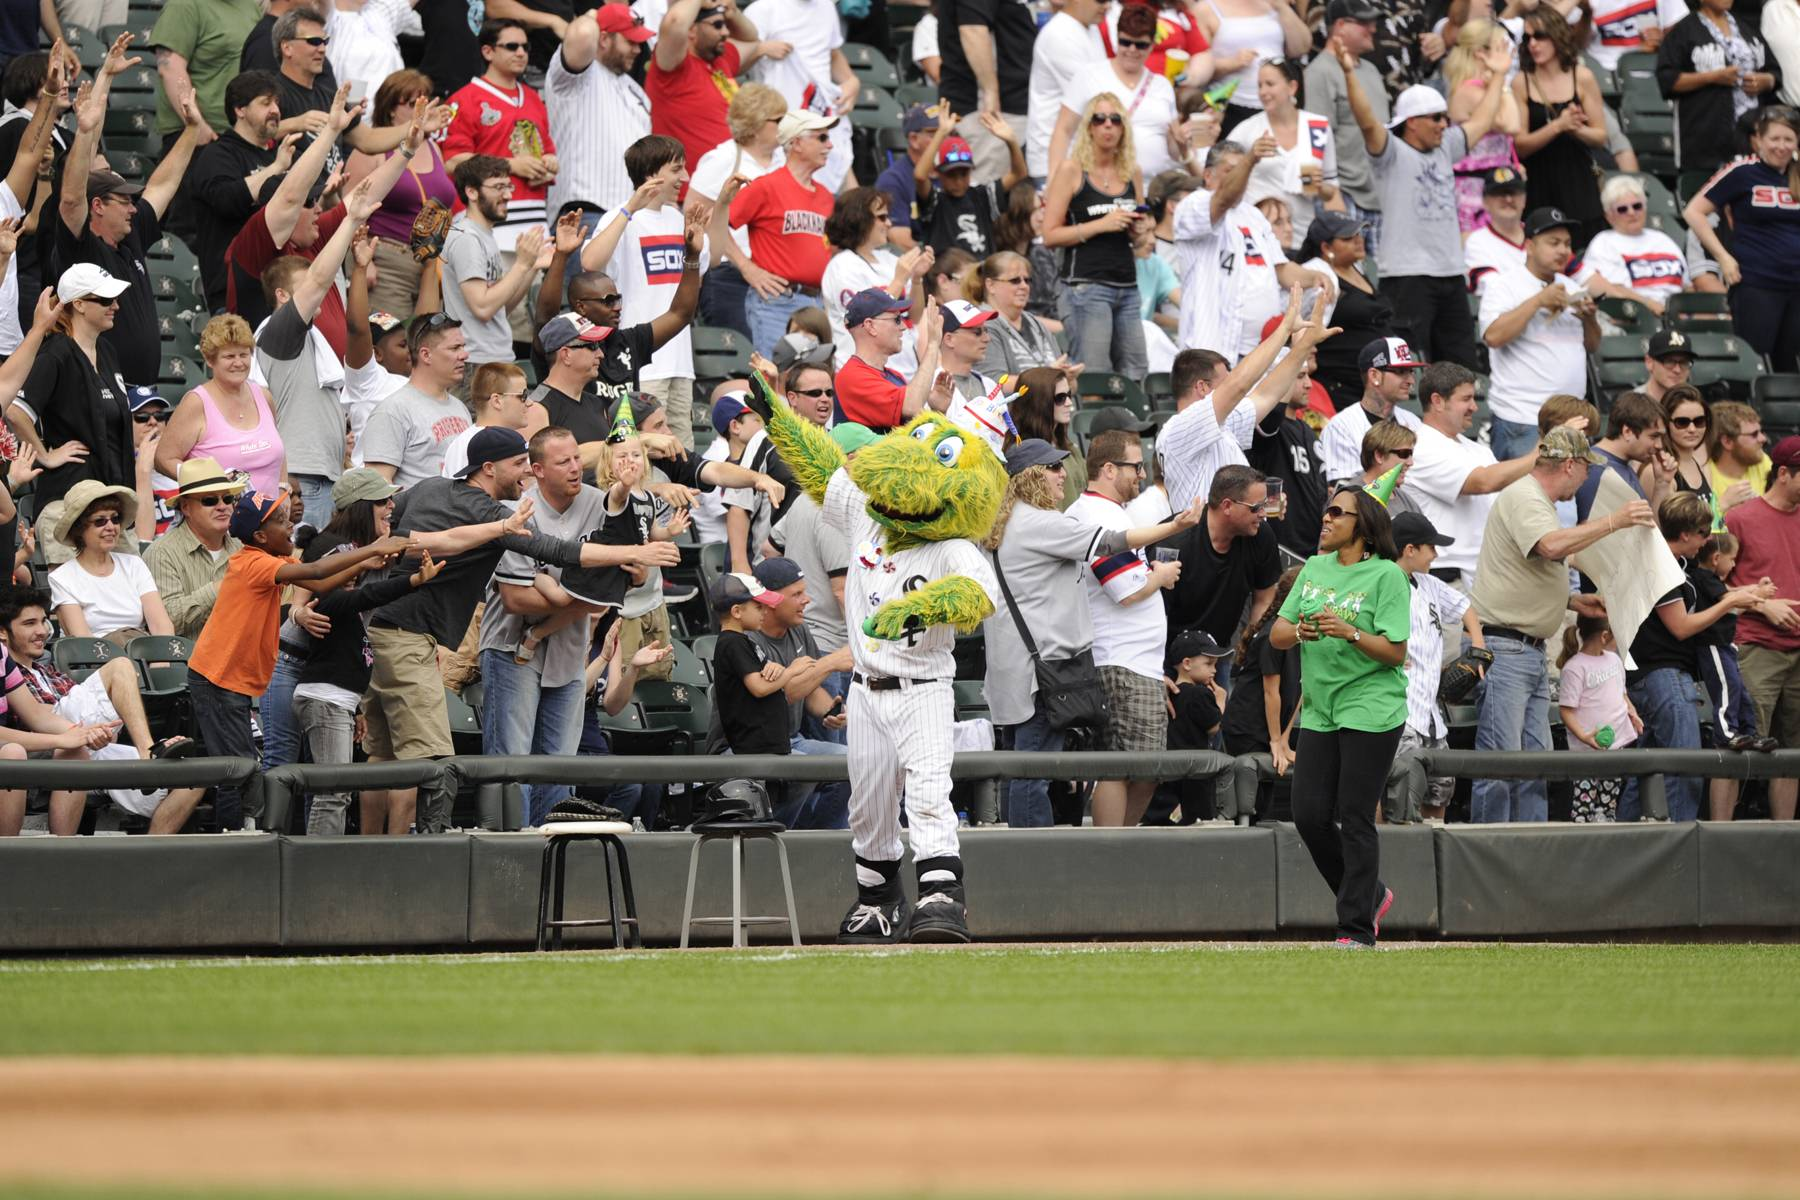 Join the Chicago White Sox on June 10 for a good cause.Photo courtesy of Ron Vesely